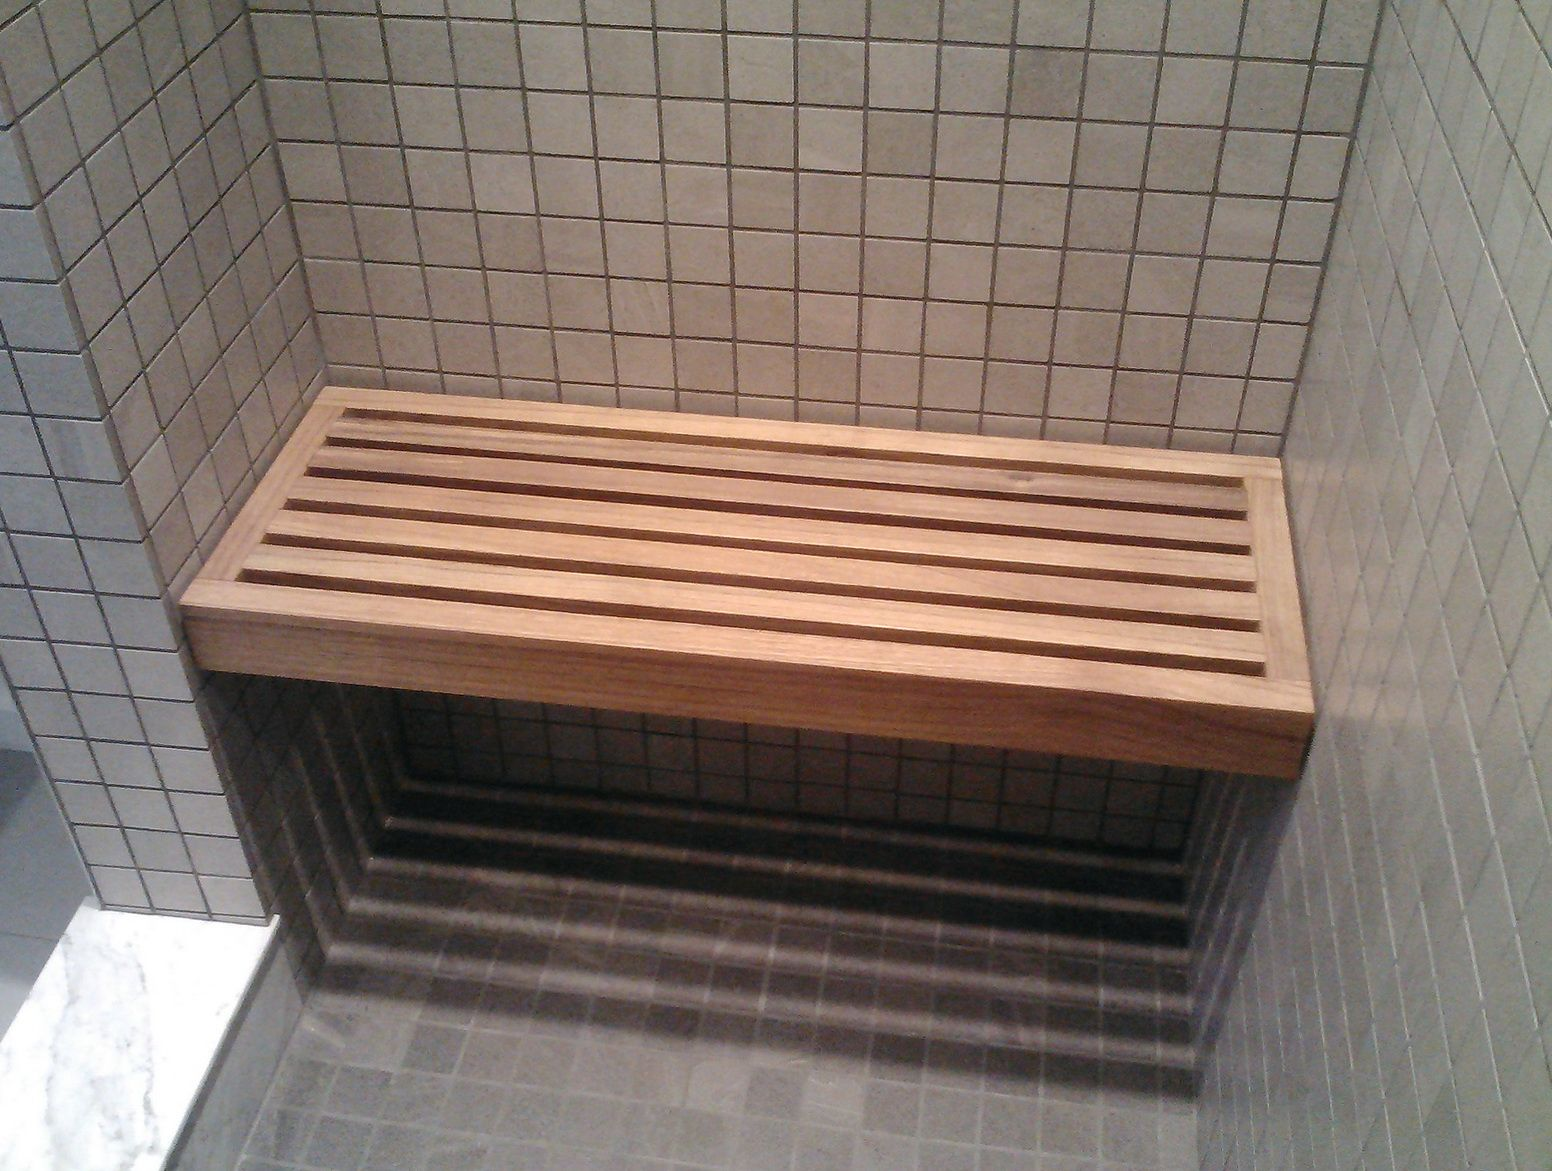 x shower w l h ada bench legs d teak compliant